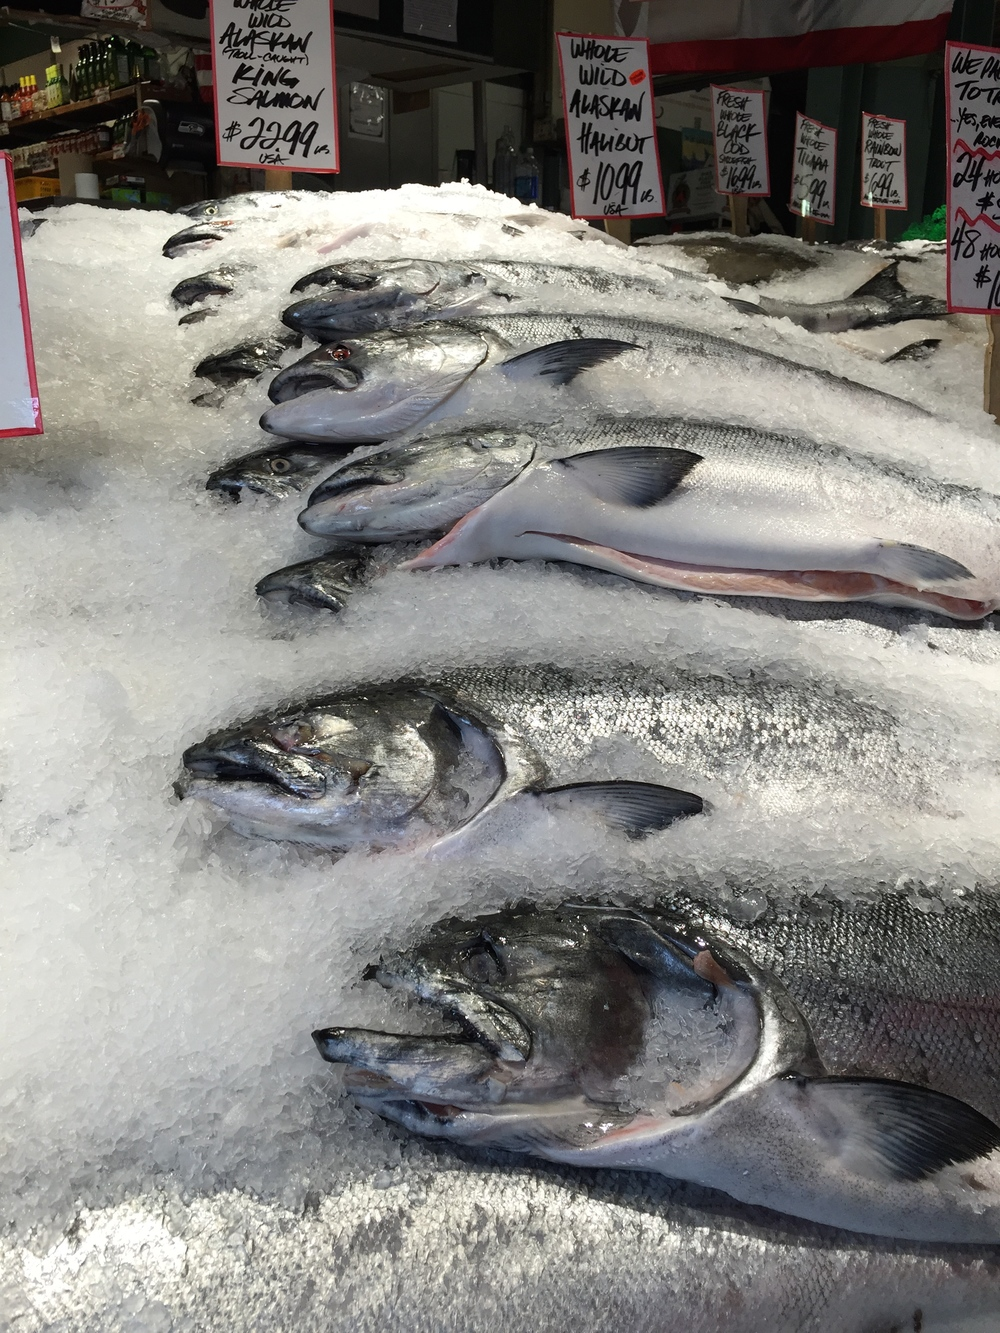 The freshest fish, of course!